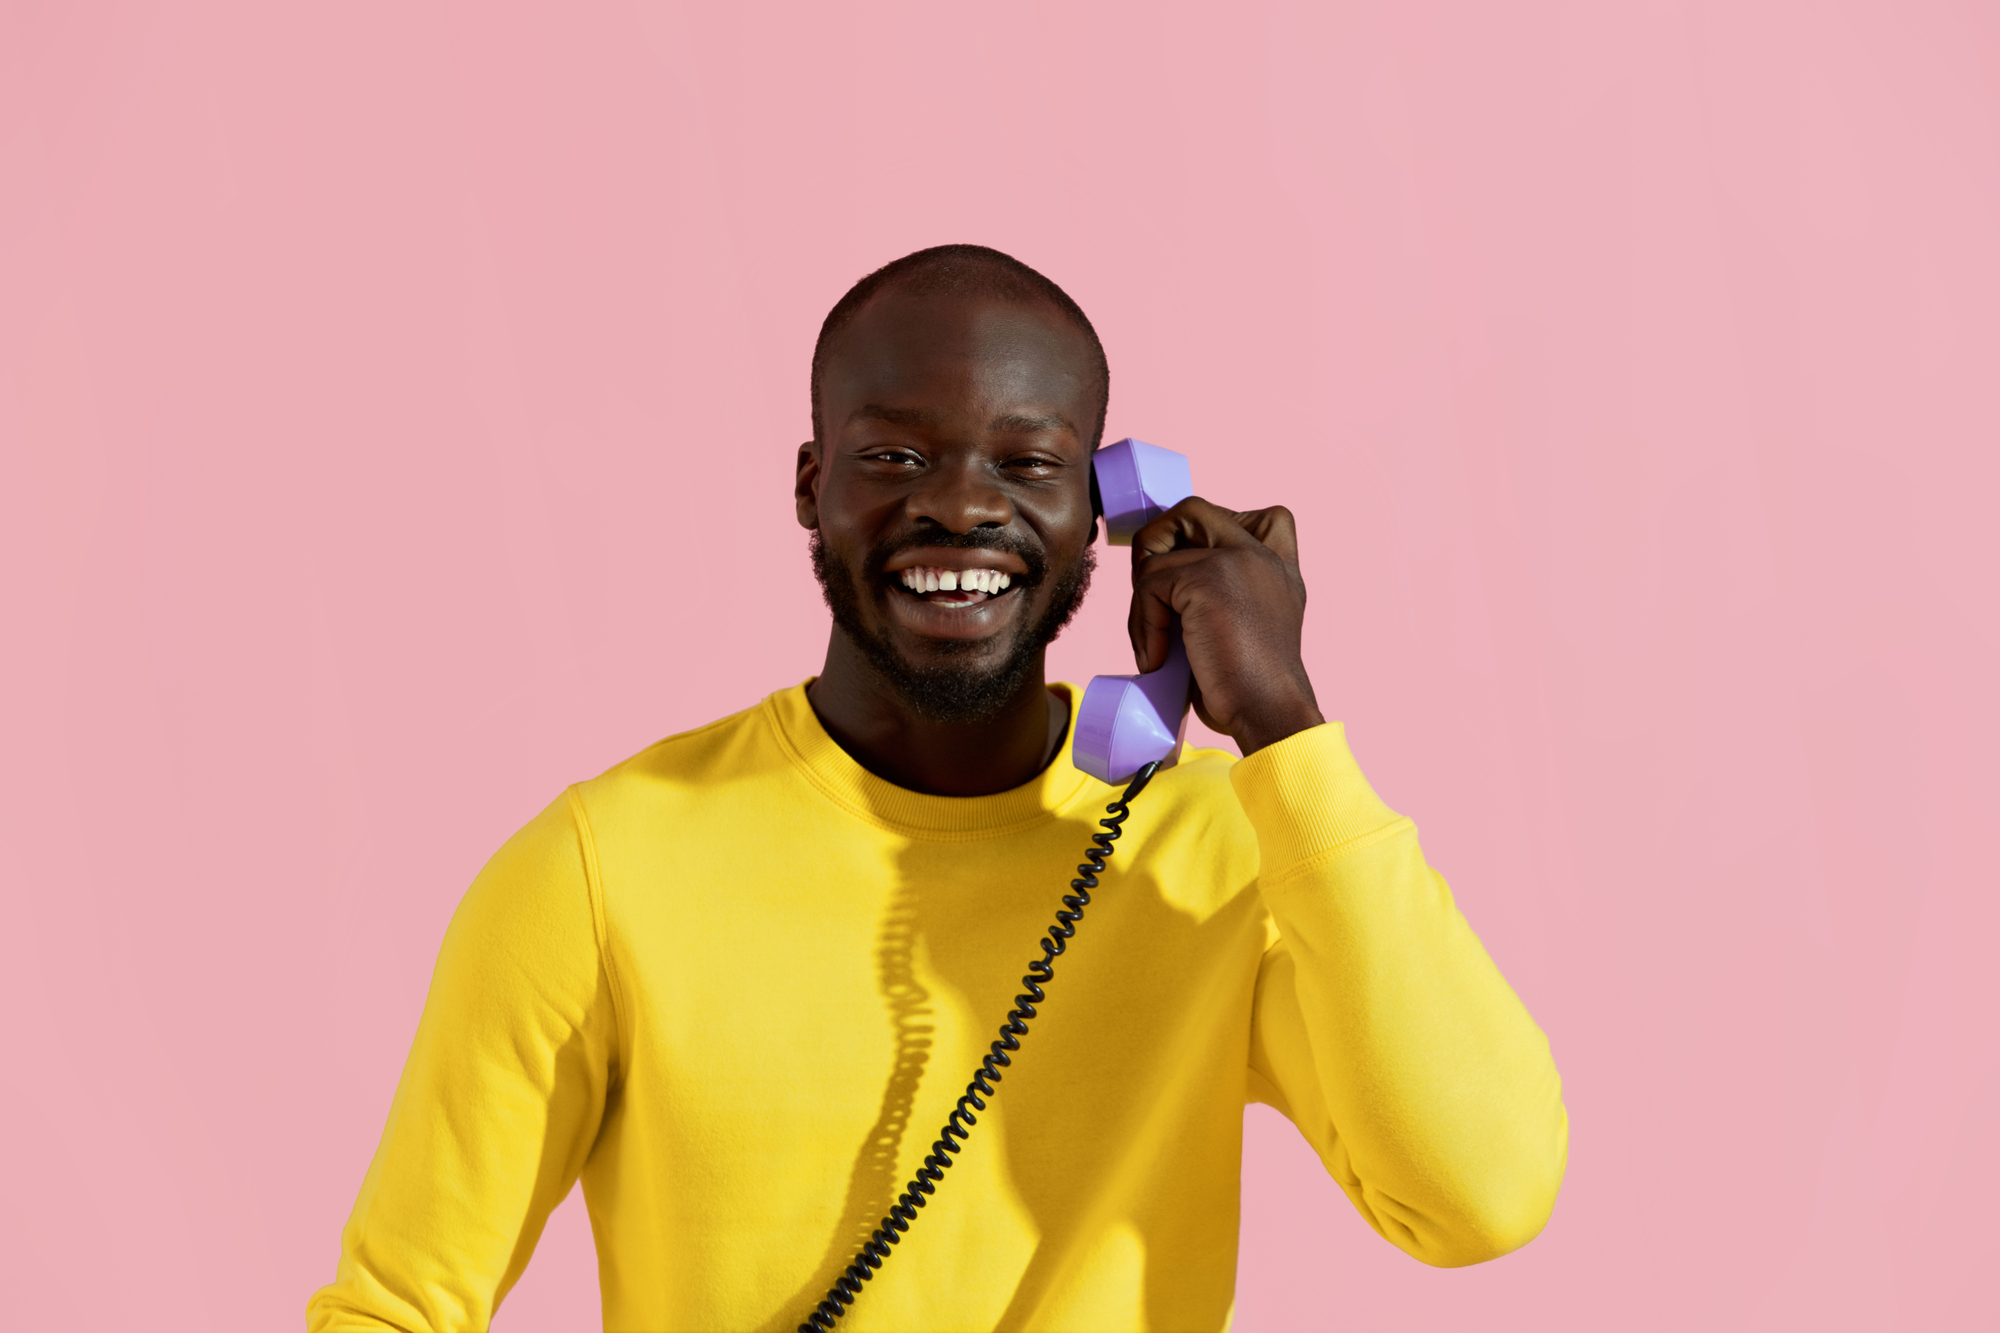 Smiling black man with purple phone colorful portrait